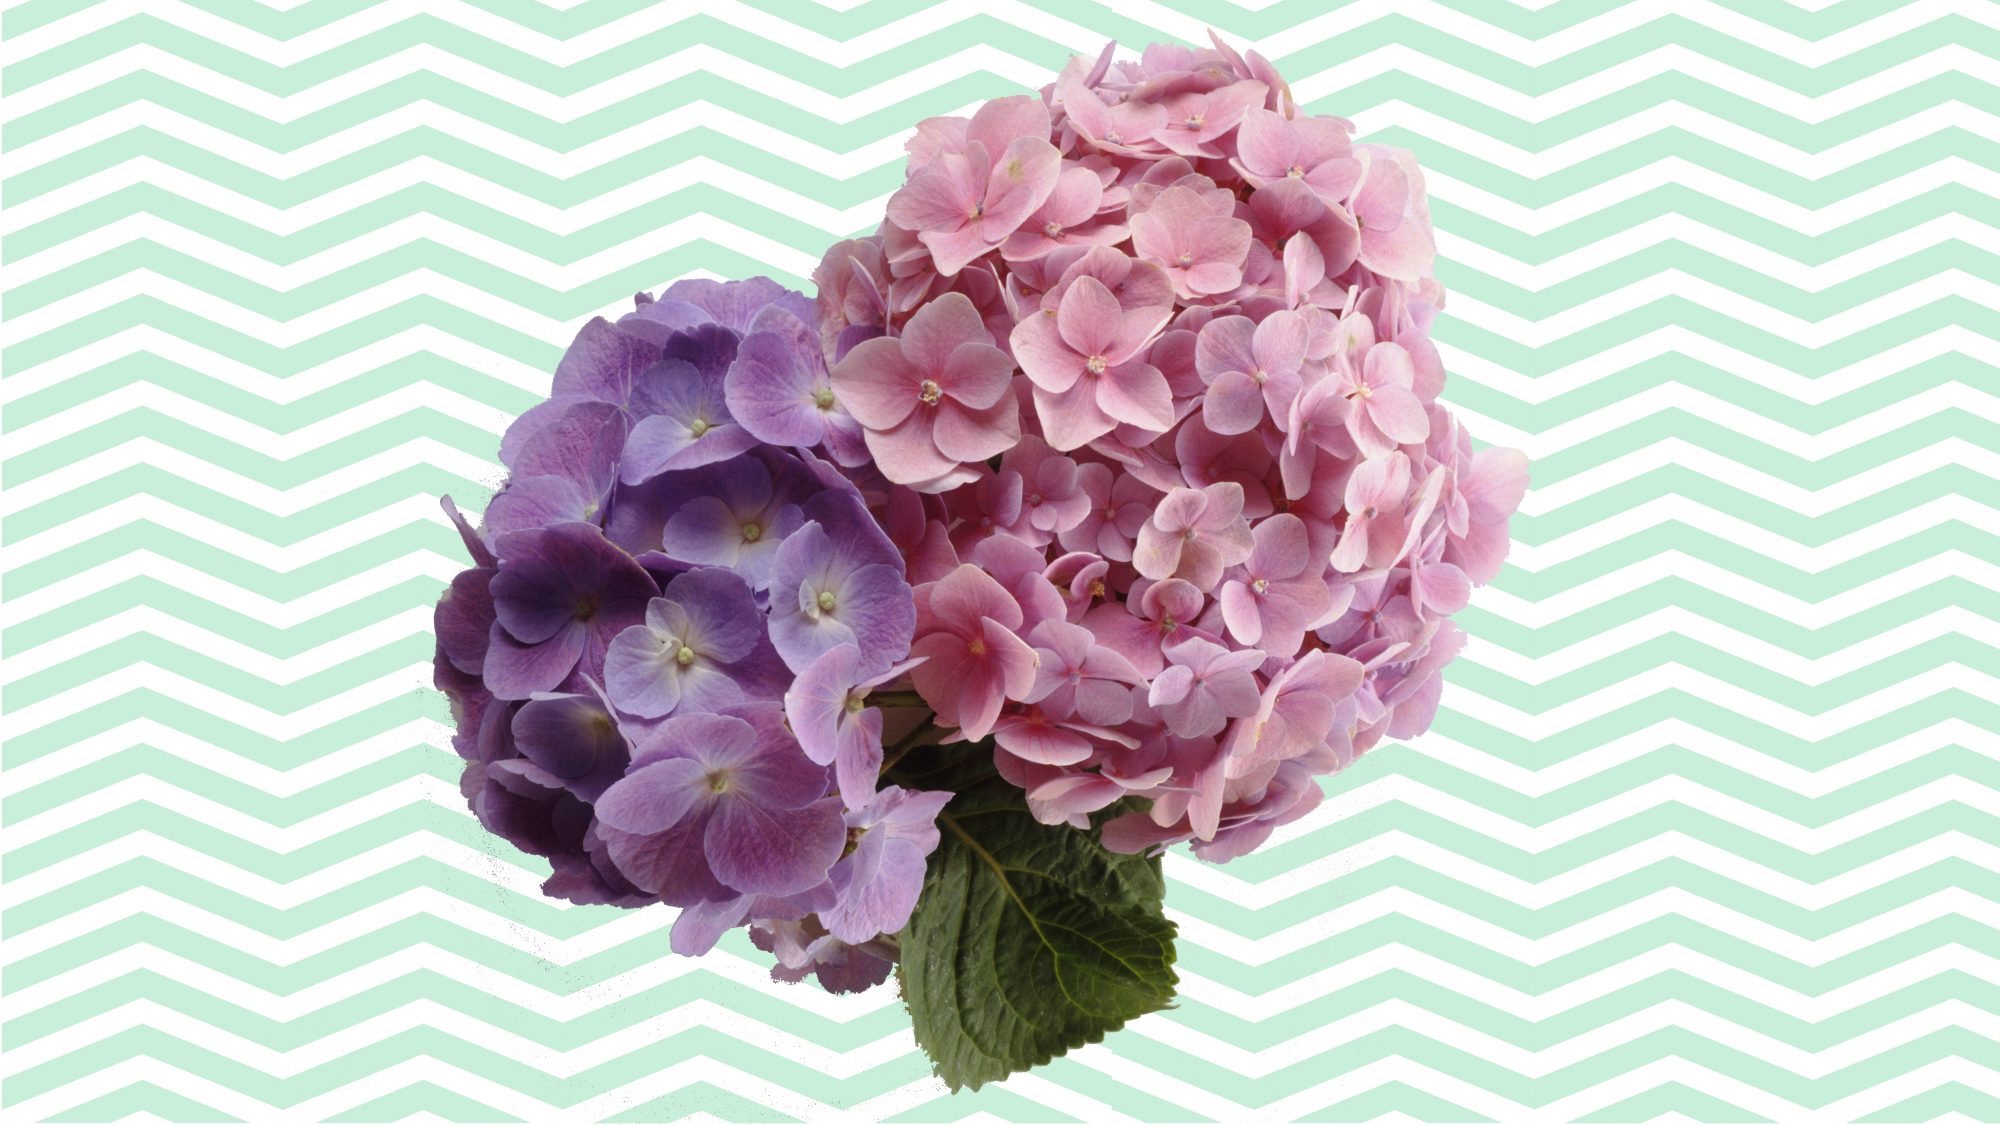 Extend the Life of Hydrangeas With This Florist-Approved Flower Hack